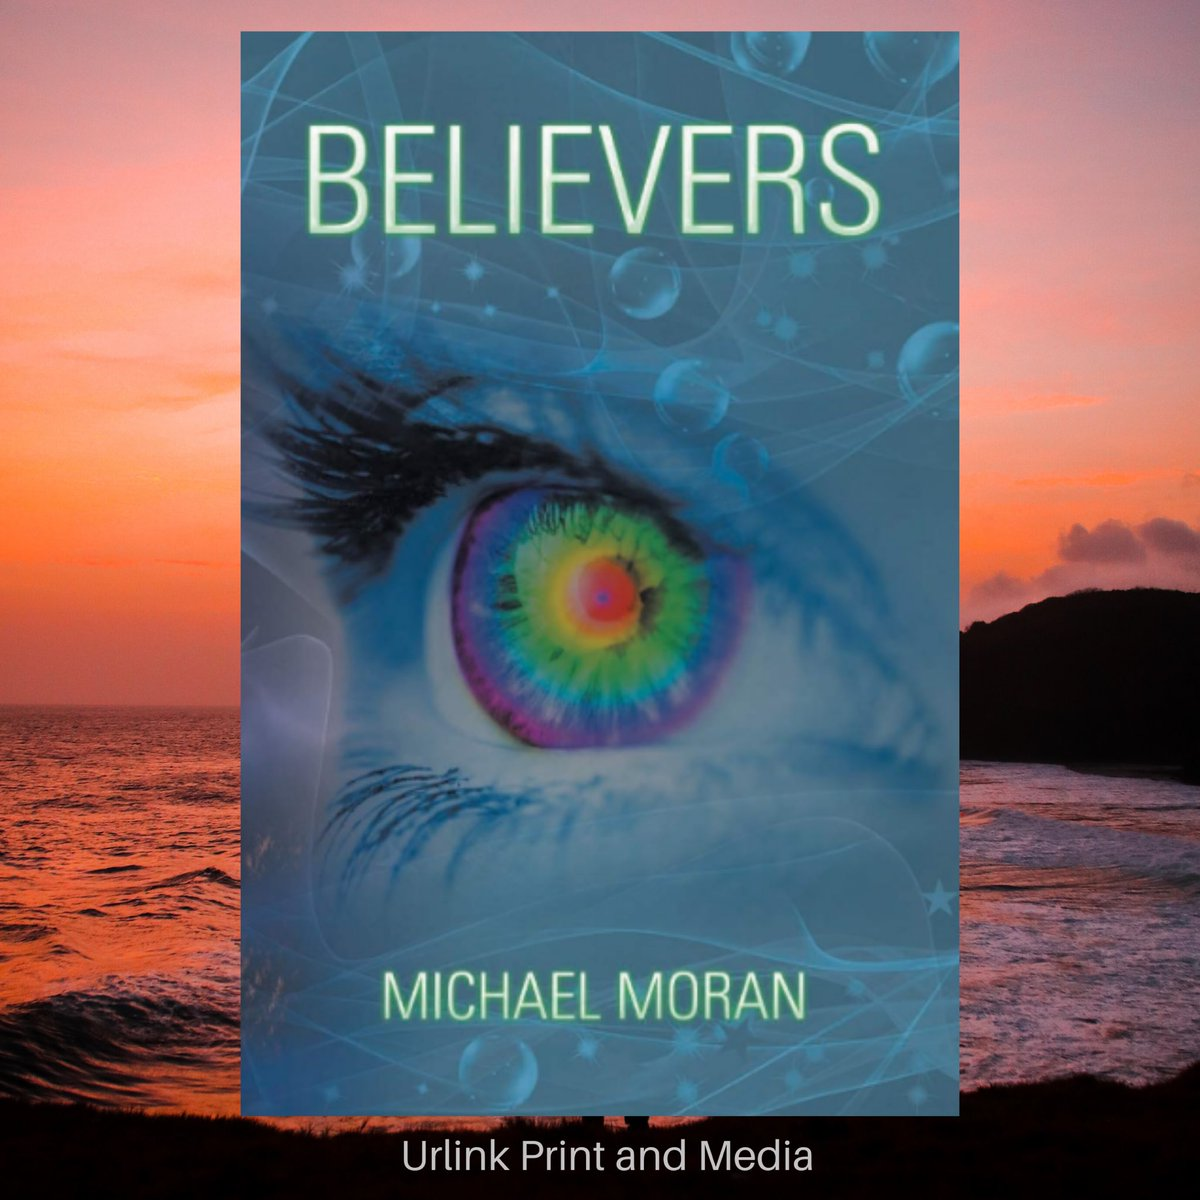 Will he become a true hero or crumble under pressure and fail the world? #UrlinkPrintandMedia #amazon #ebook #publishing #greatreads #Book  #bookworm #bookaholic #life #wednesday #booktography #booklover https://amzn.to/34Shp3cpic.twitter.com/aDvJALUUqH